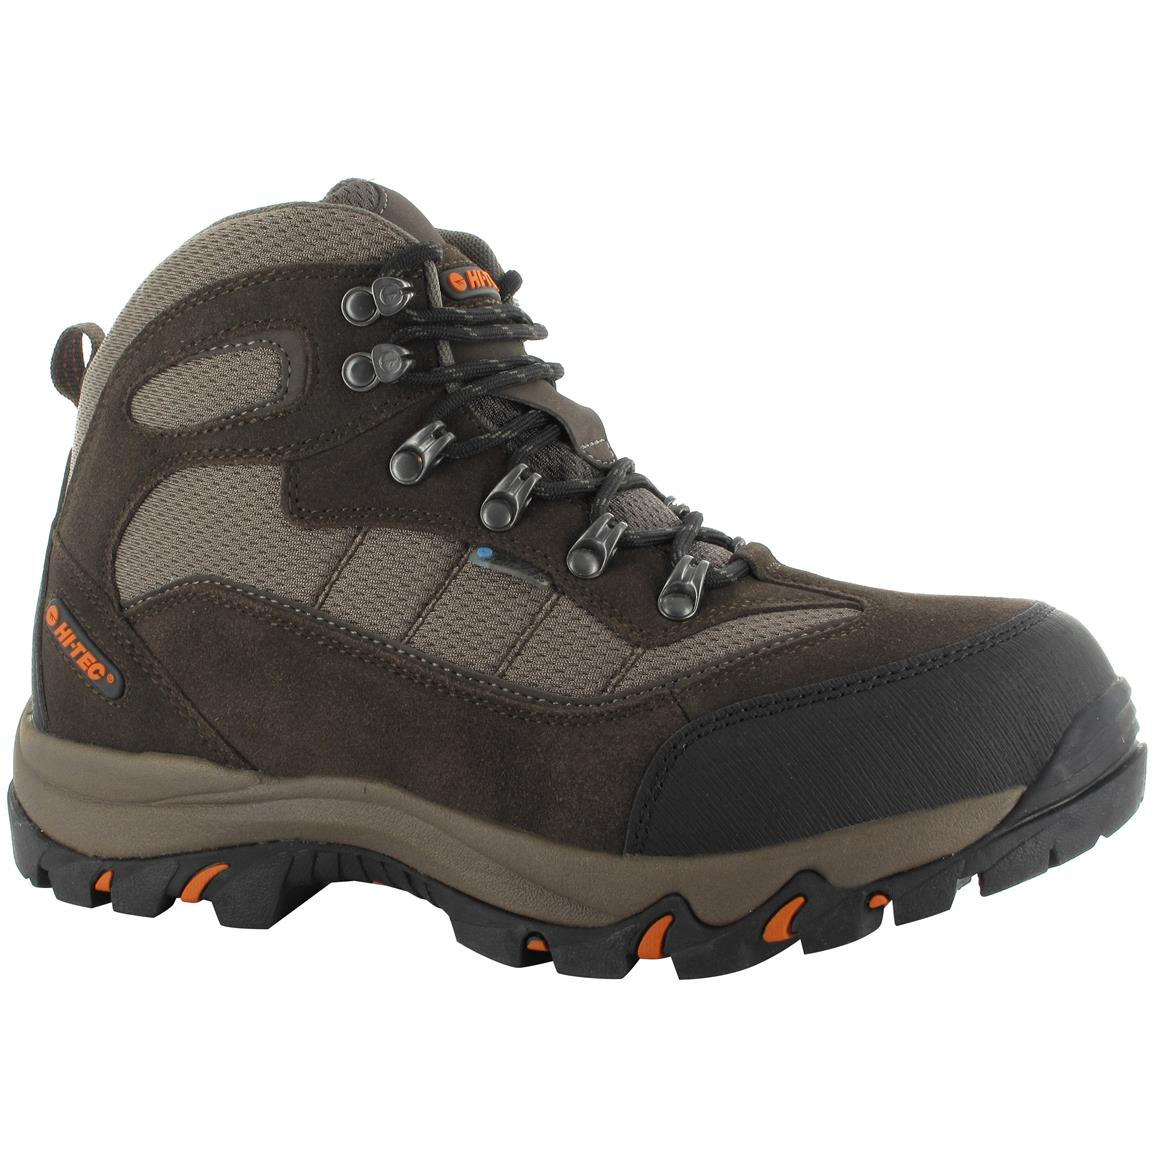 Hi-Tec Skamania Men's Mid Hiking Boots, Waterproof, Chocolate / Dark Taupe